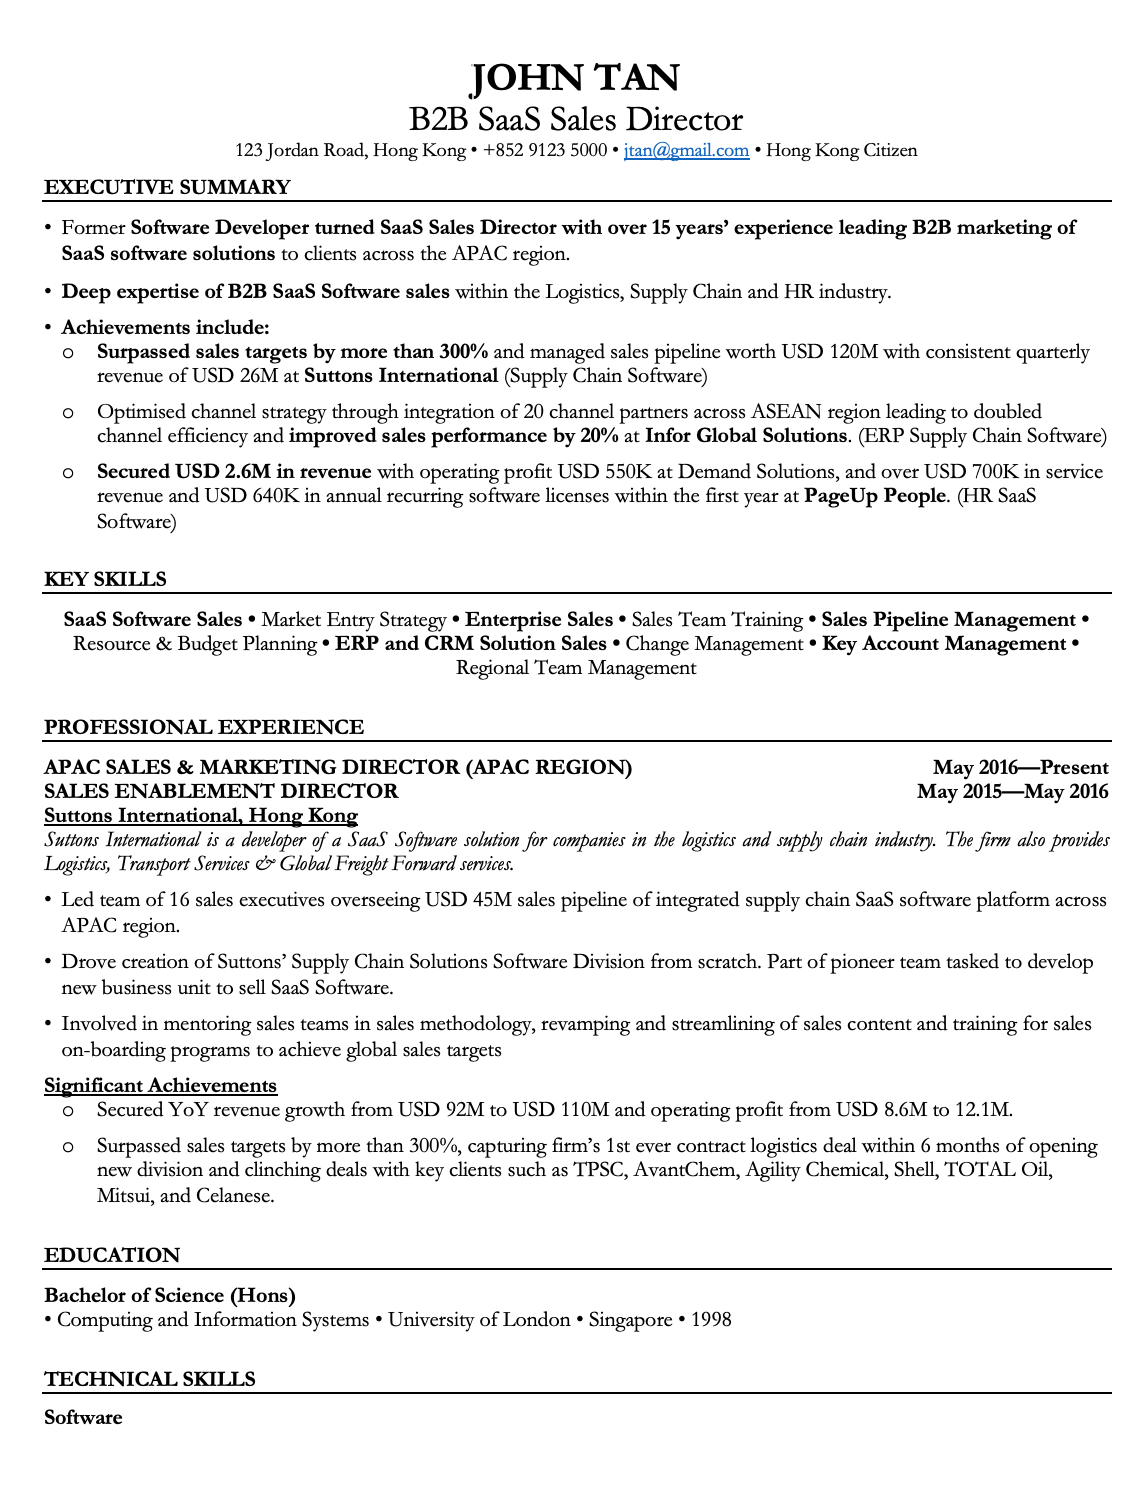 Timeless Black CV Template Resume Template Hong Kong in